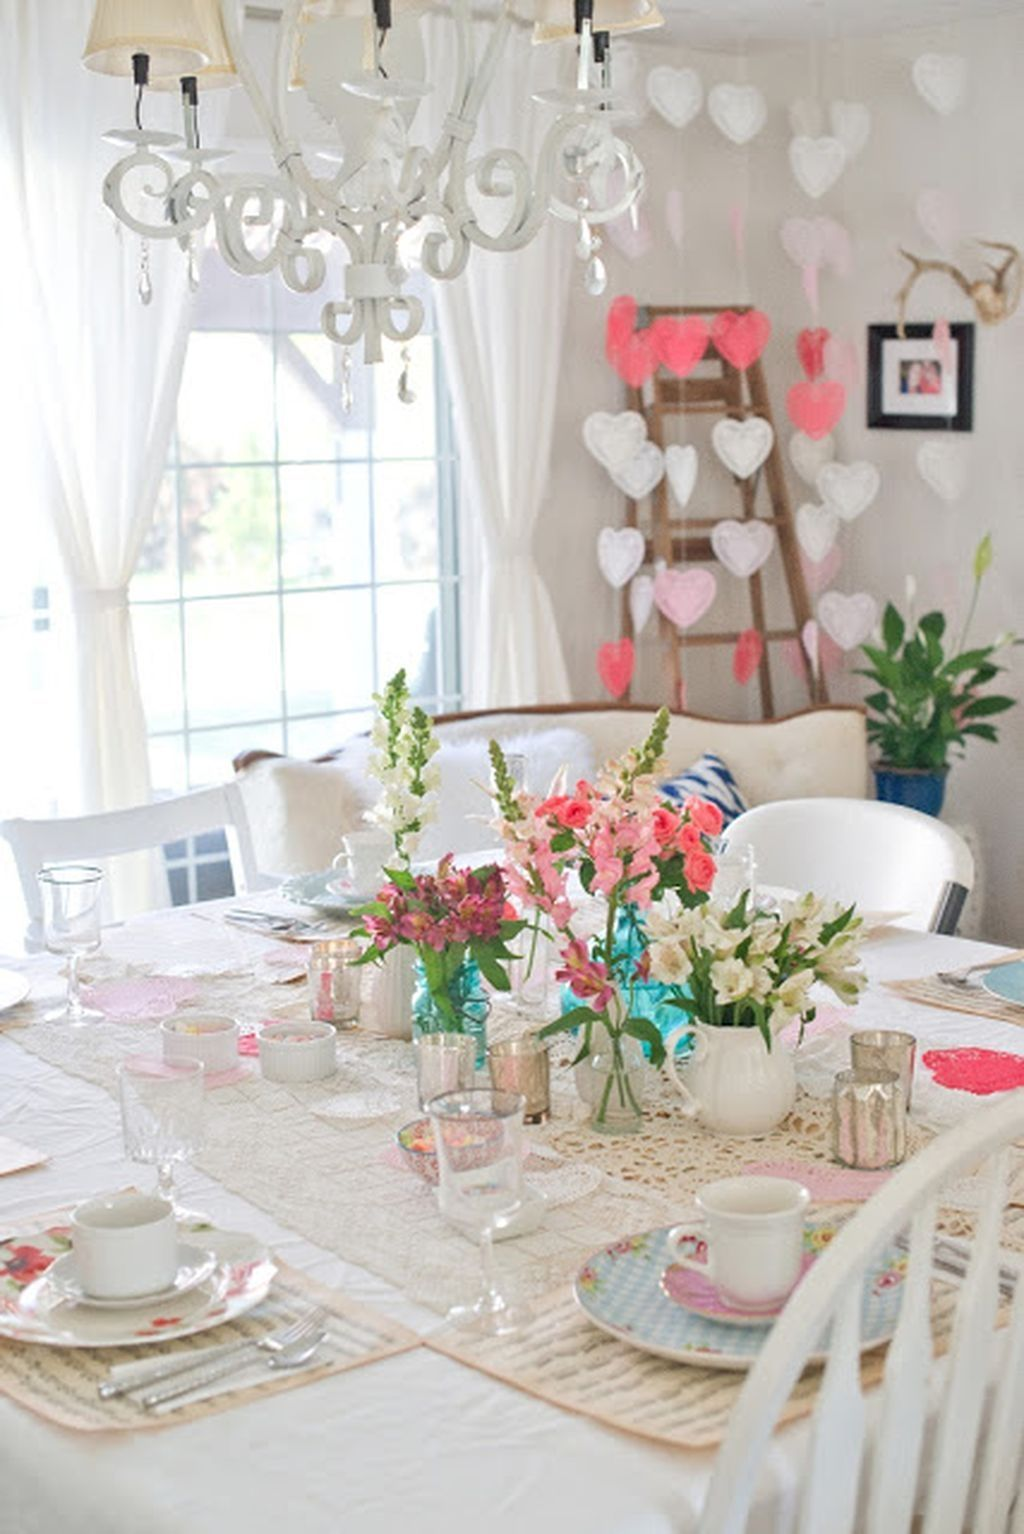 50 Romantic Dining Room Decorating Ideas for Valentine\'s Day | Room ...